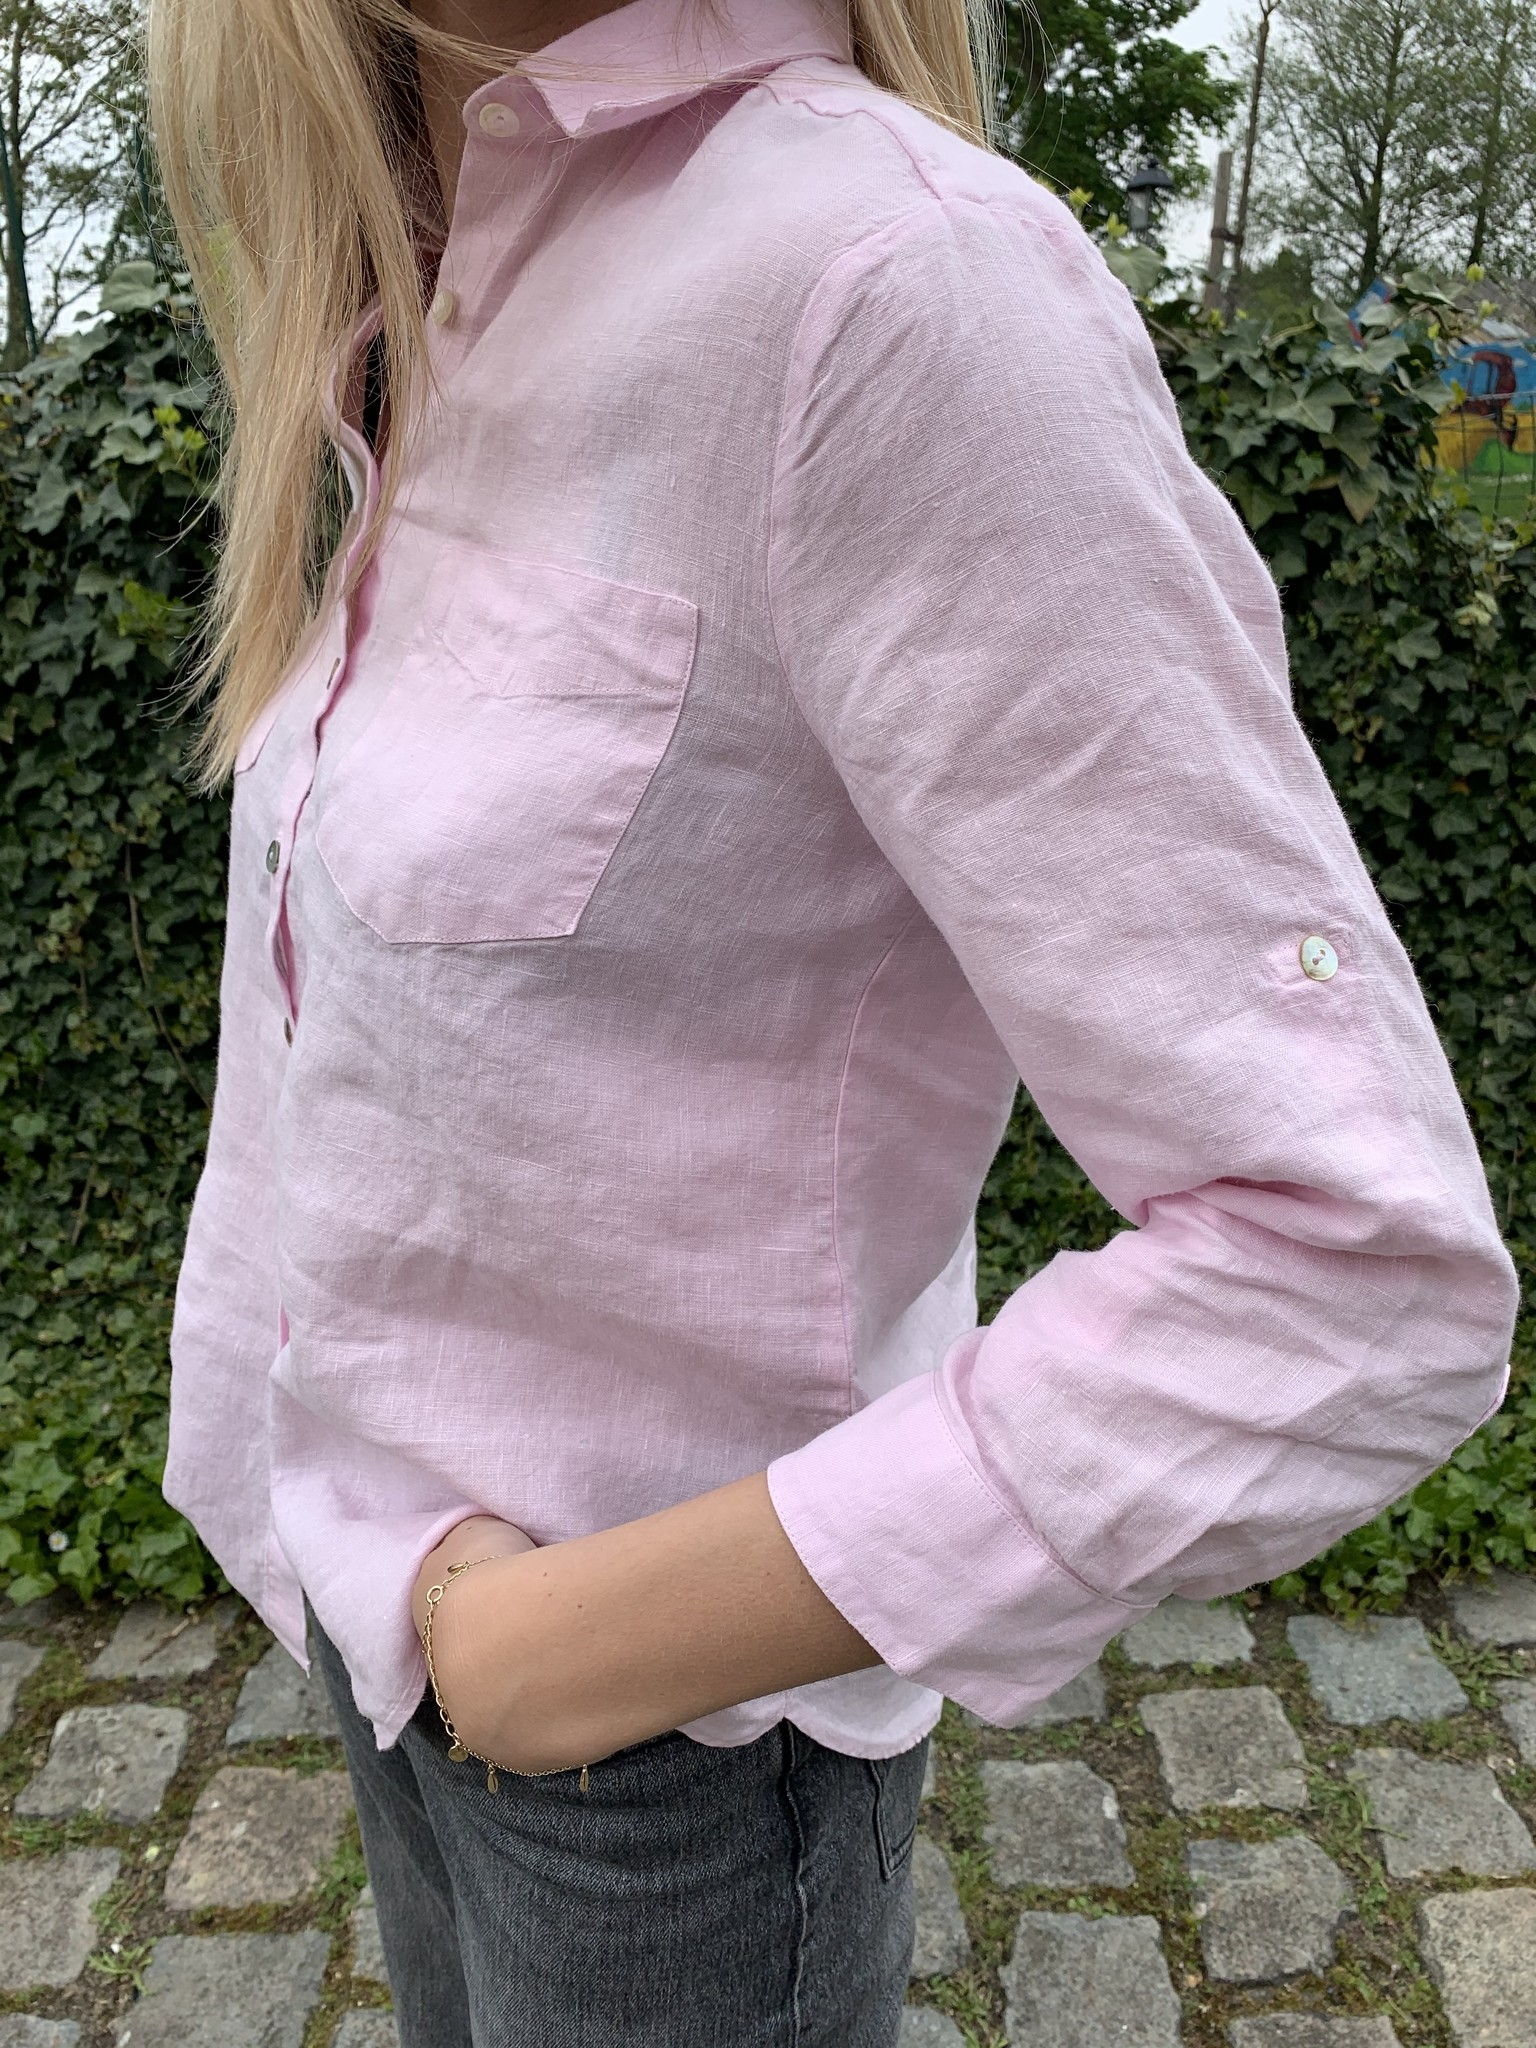 Pure linen blouse, 3/4 sleeves, pale pink